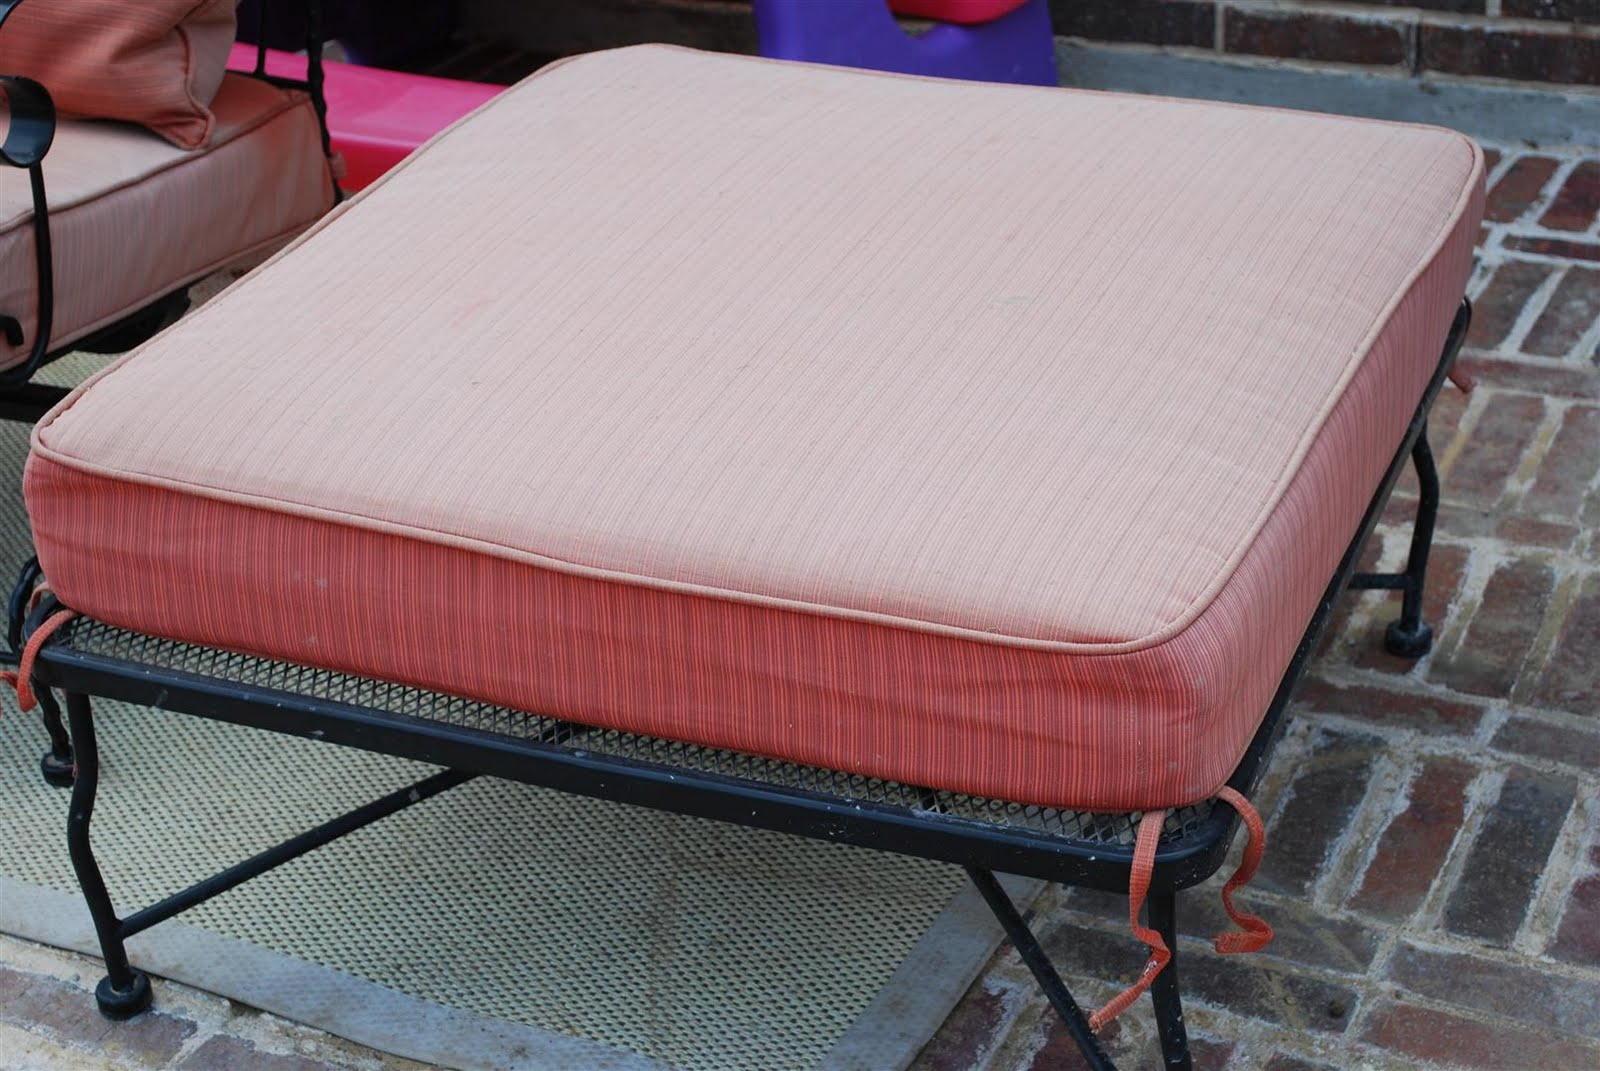 The only downside to reupholstering these chairs is the price of outdoor fabric and the time it will take for me to redo it all. Here is what my patio chair ... & craftyc0rn3r: Patio Furniture Reupholstering